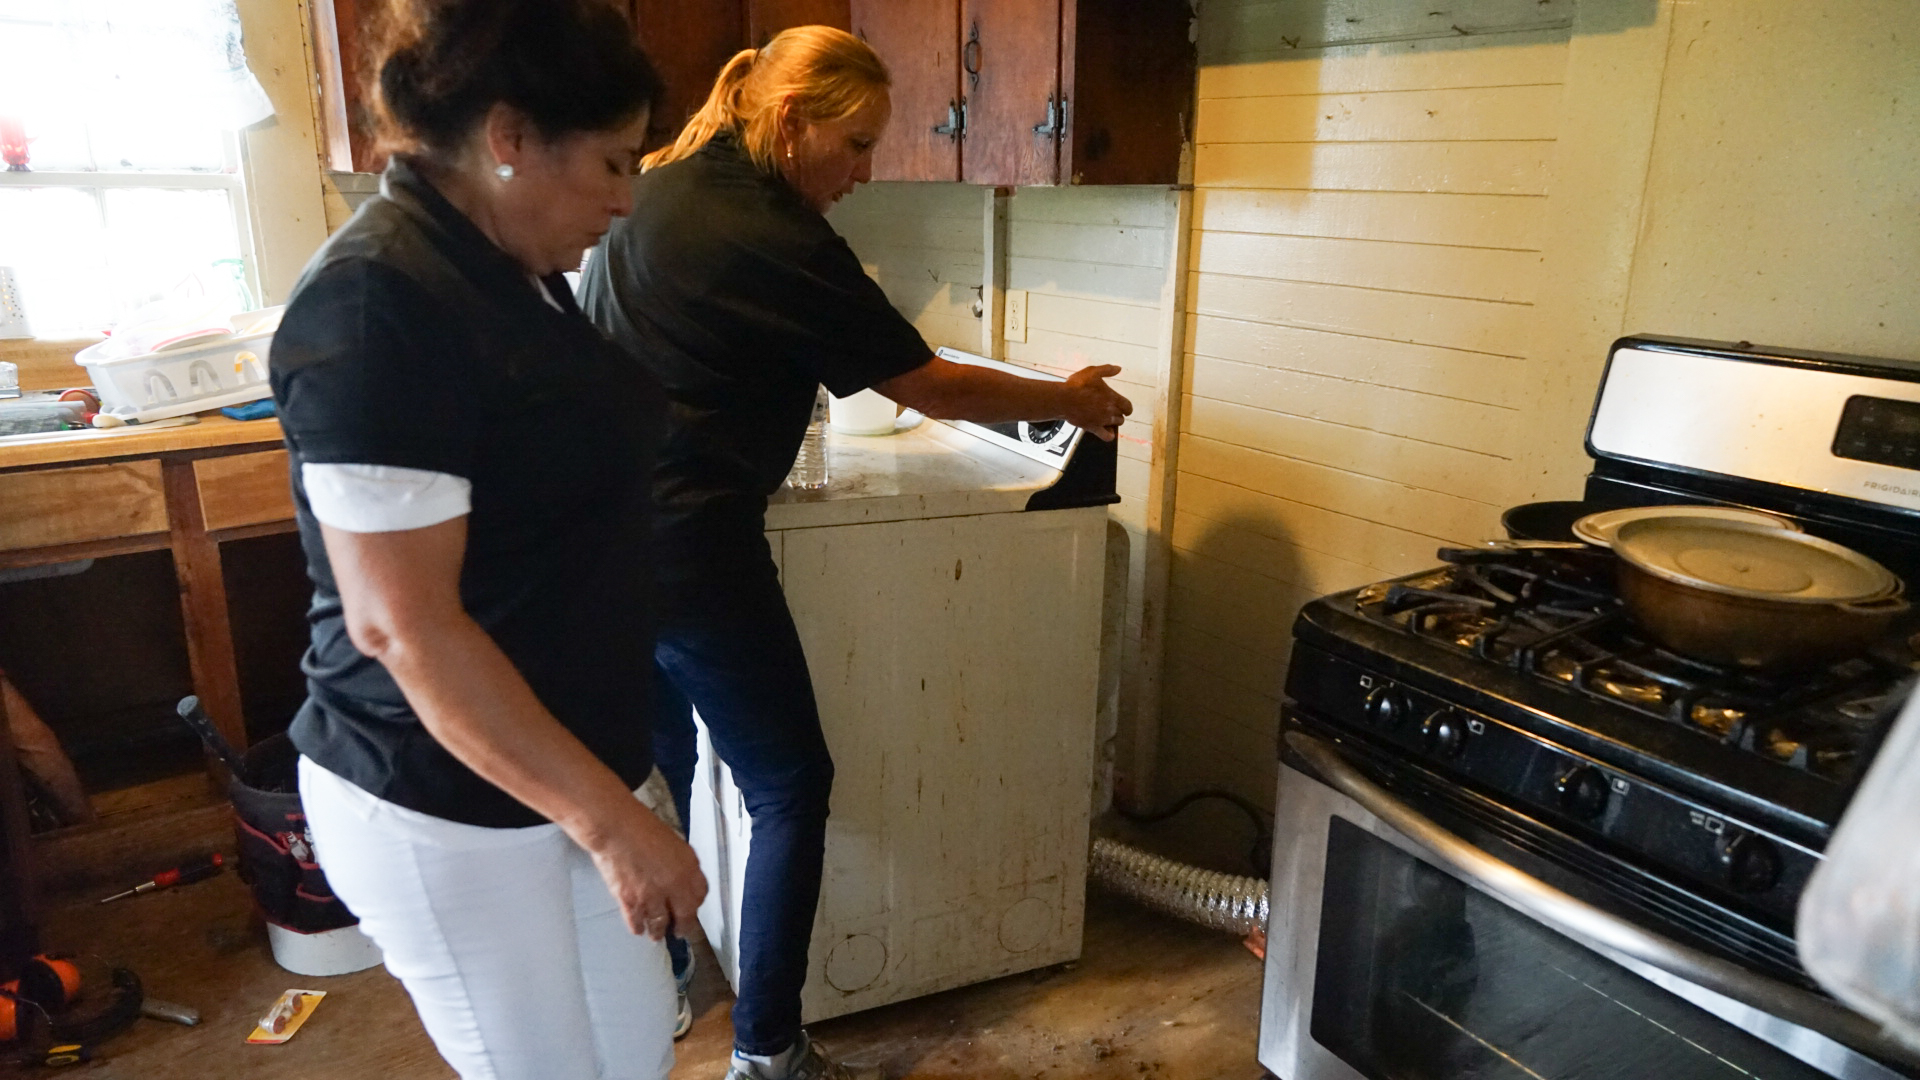 Nurse Gena Byrd and case worker Imelda Moye, both of whom conduct medical outreach for local farmworkers for Greene County Health Care, work to remove flood-damaged wood in the home of an elderly patient in Snow Hill, North Carolina. (Lara Cooper/Direct Relief)